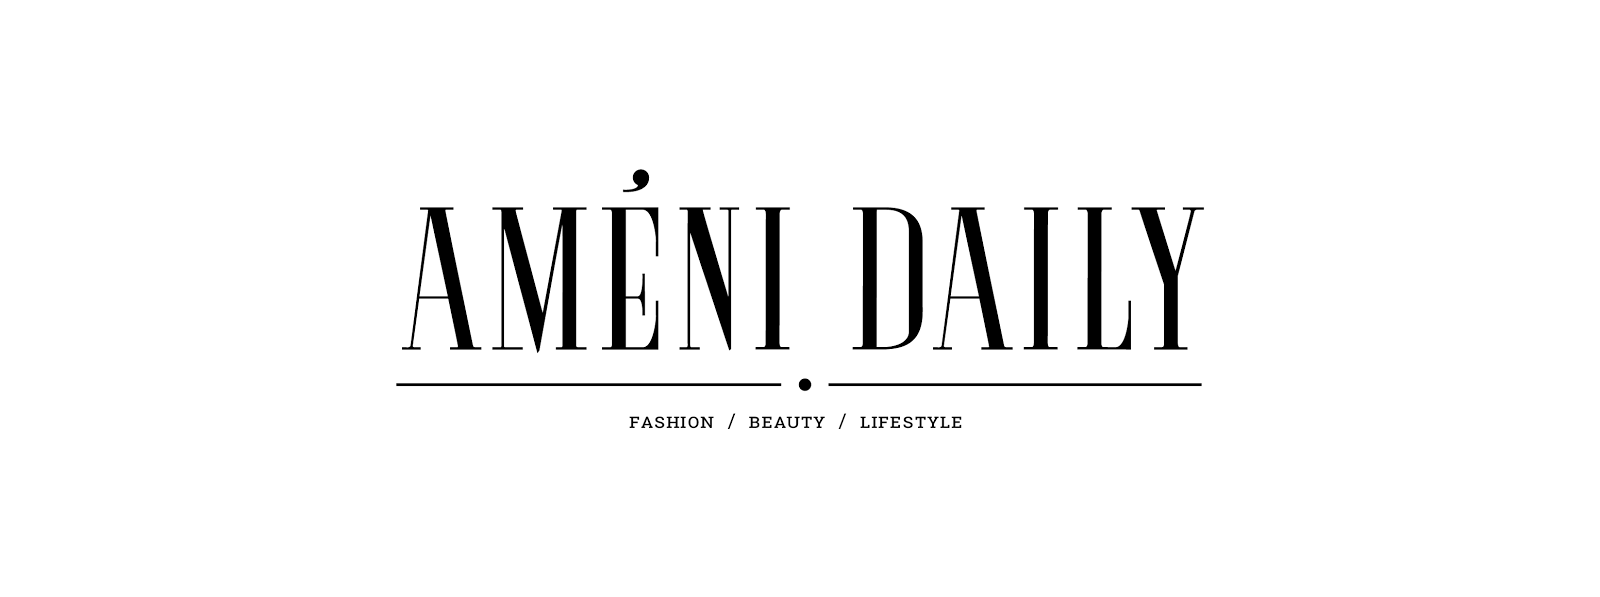 Ameni Daily - Blog Mode Lyon Paris - Influenceuse Mode et Beauté